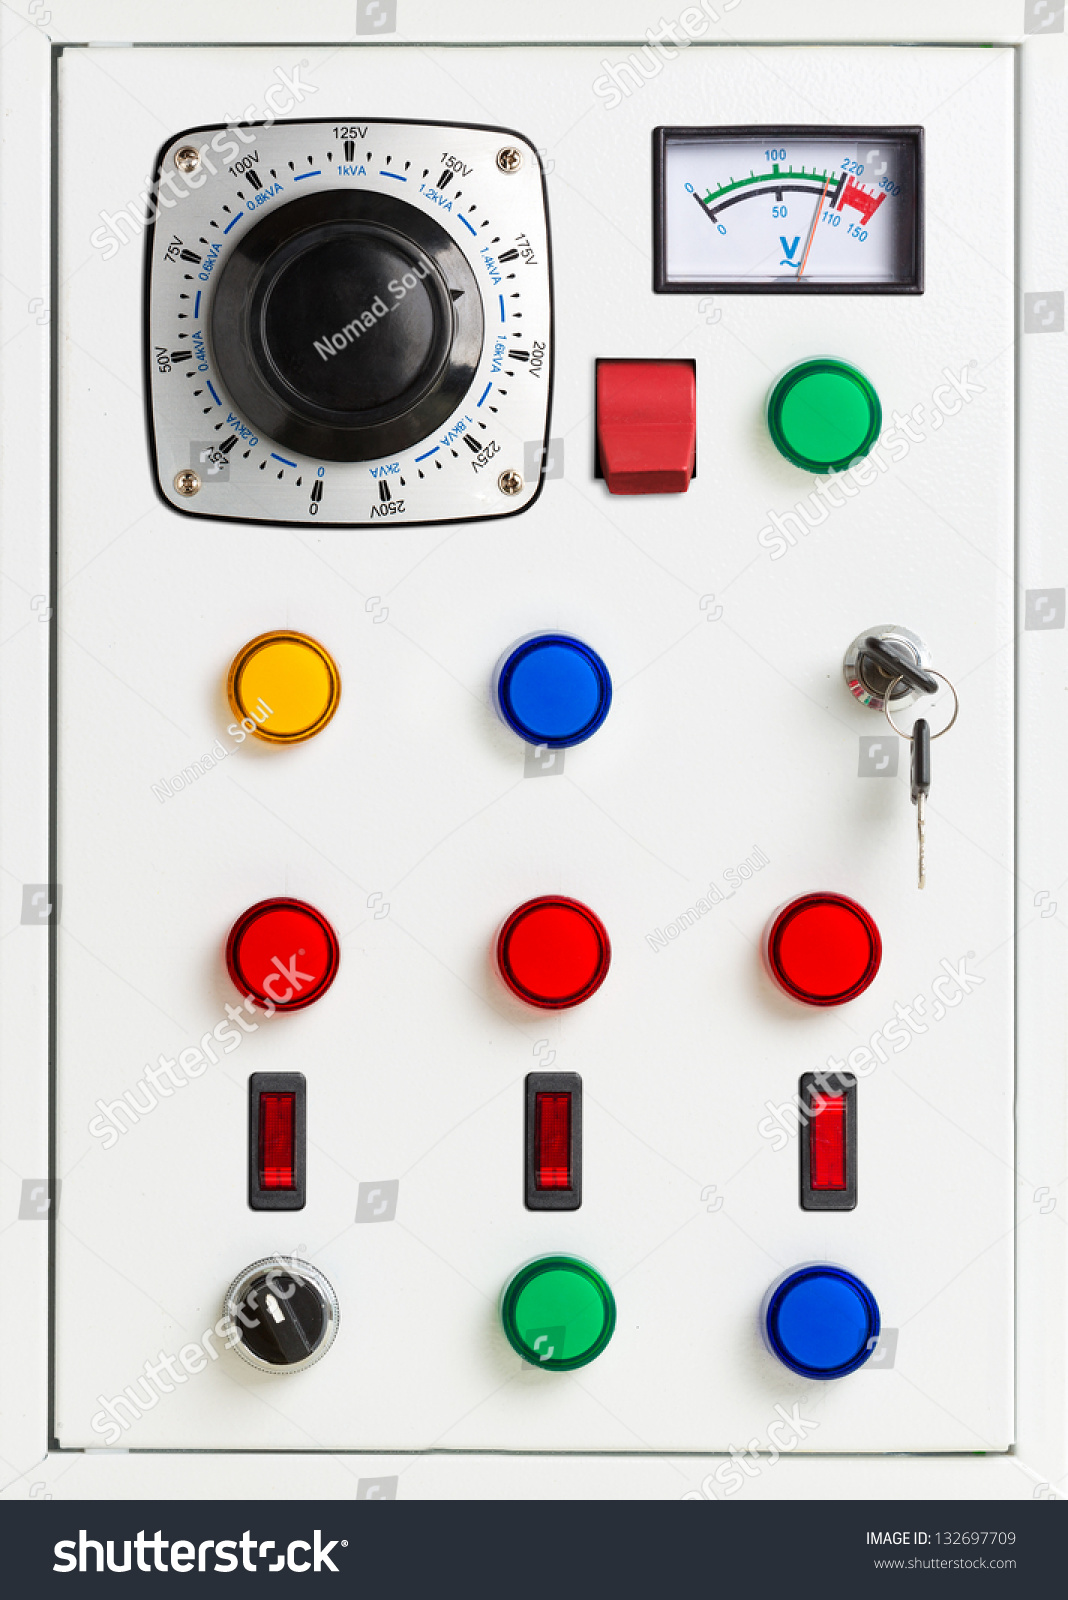 Control Panel Electrical Switchgear Cabinet Stock Photo 132697709 Shutterstock